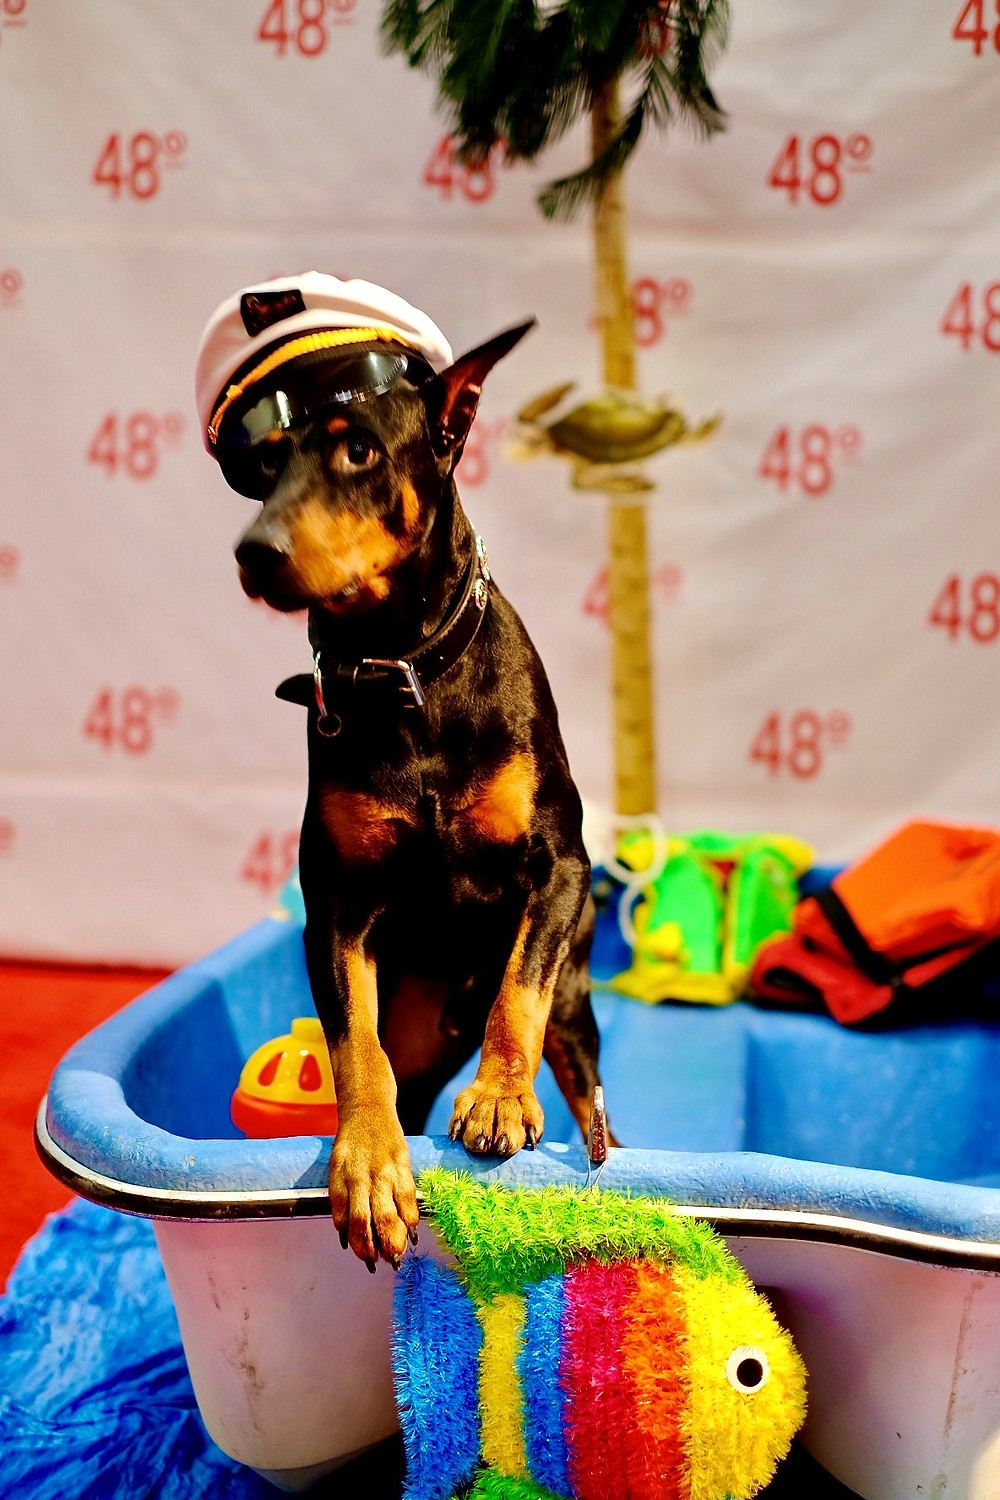 Doberman, Ric with life ring at photo shoot, in small dingy